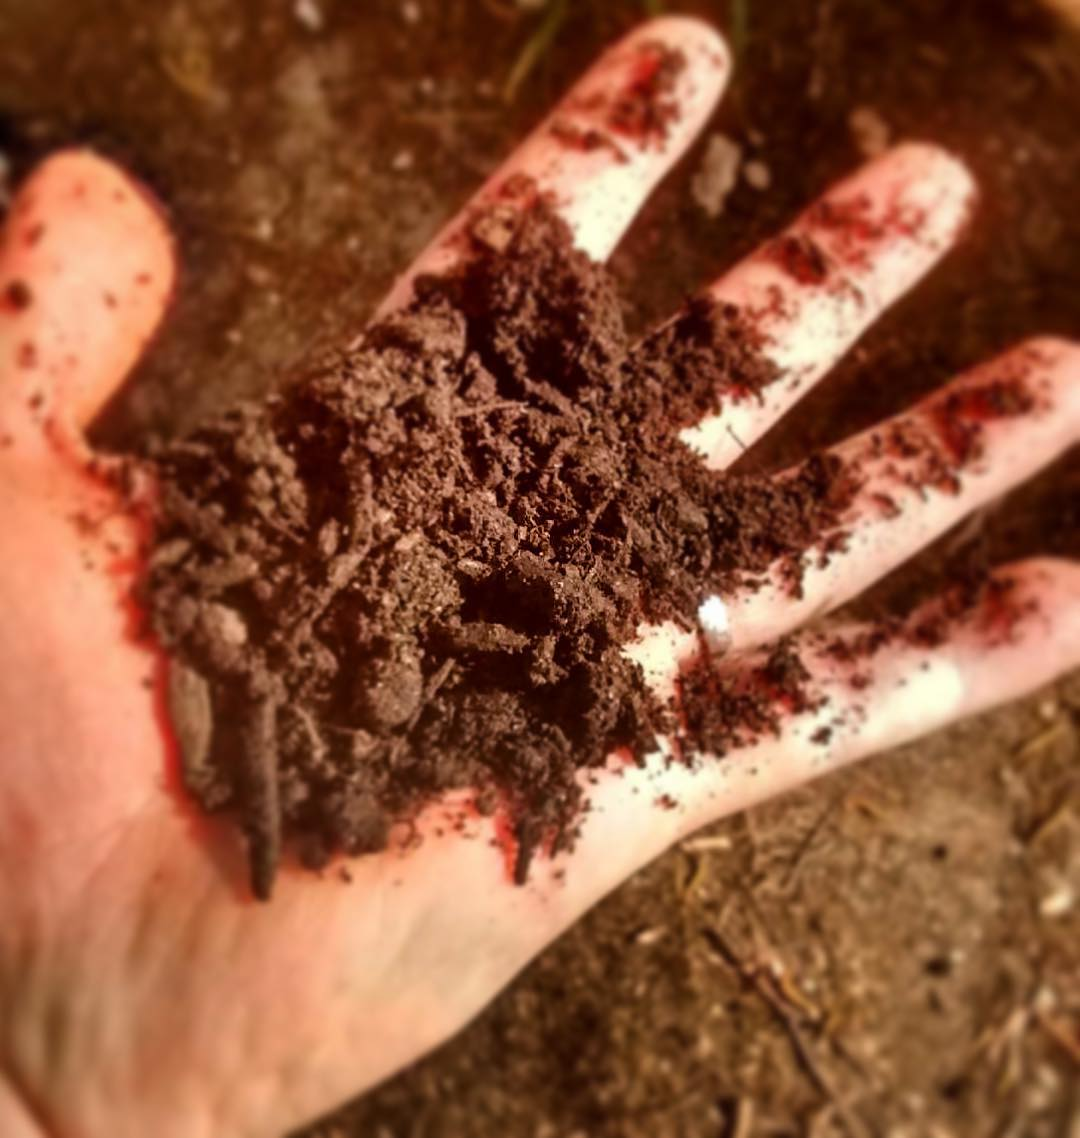 We turn it into nutrient-rich soil, which you can get back any time you ask!